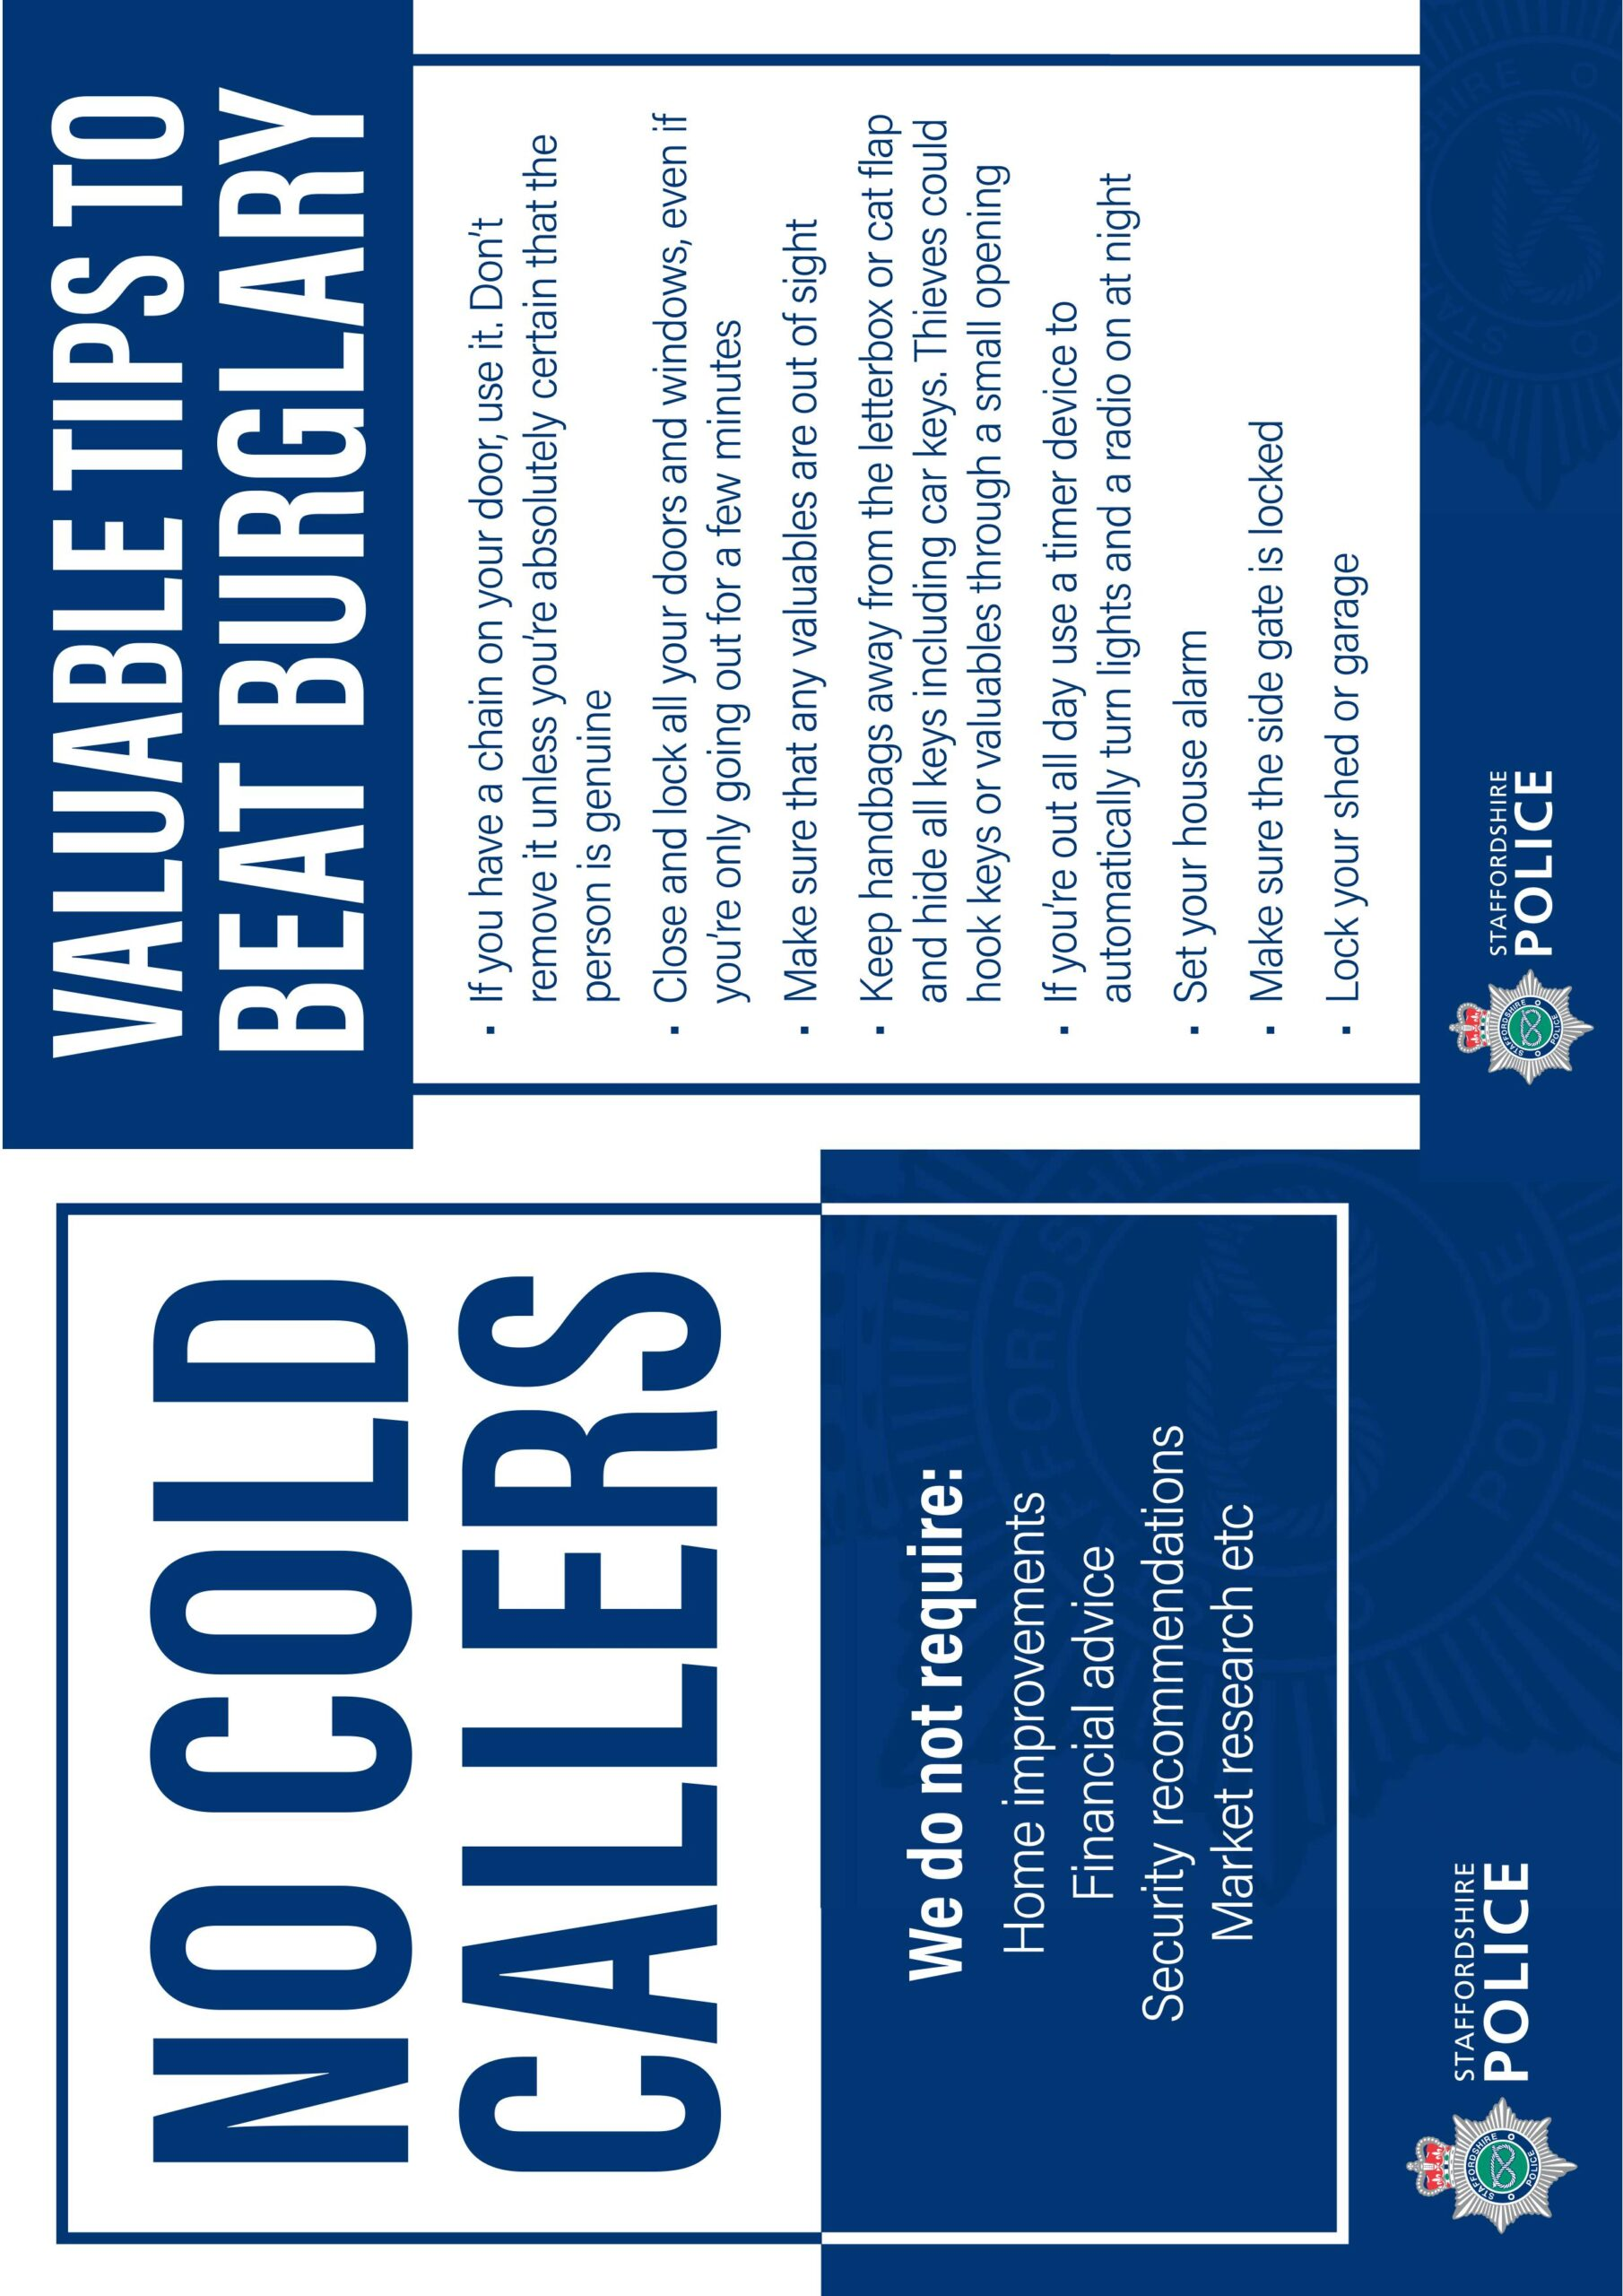 No cold callers – downloadable card for domestic use